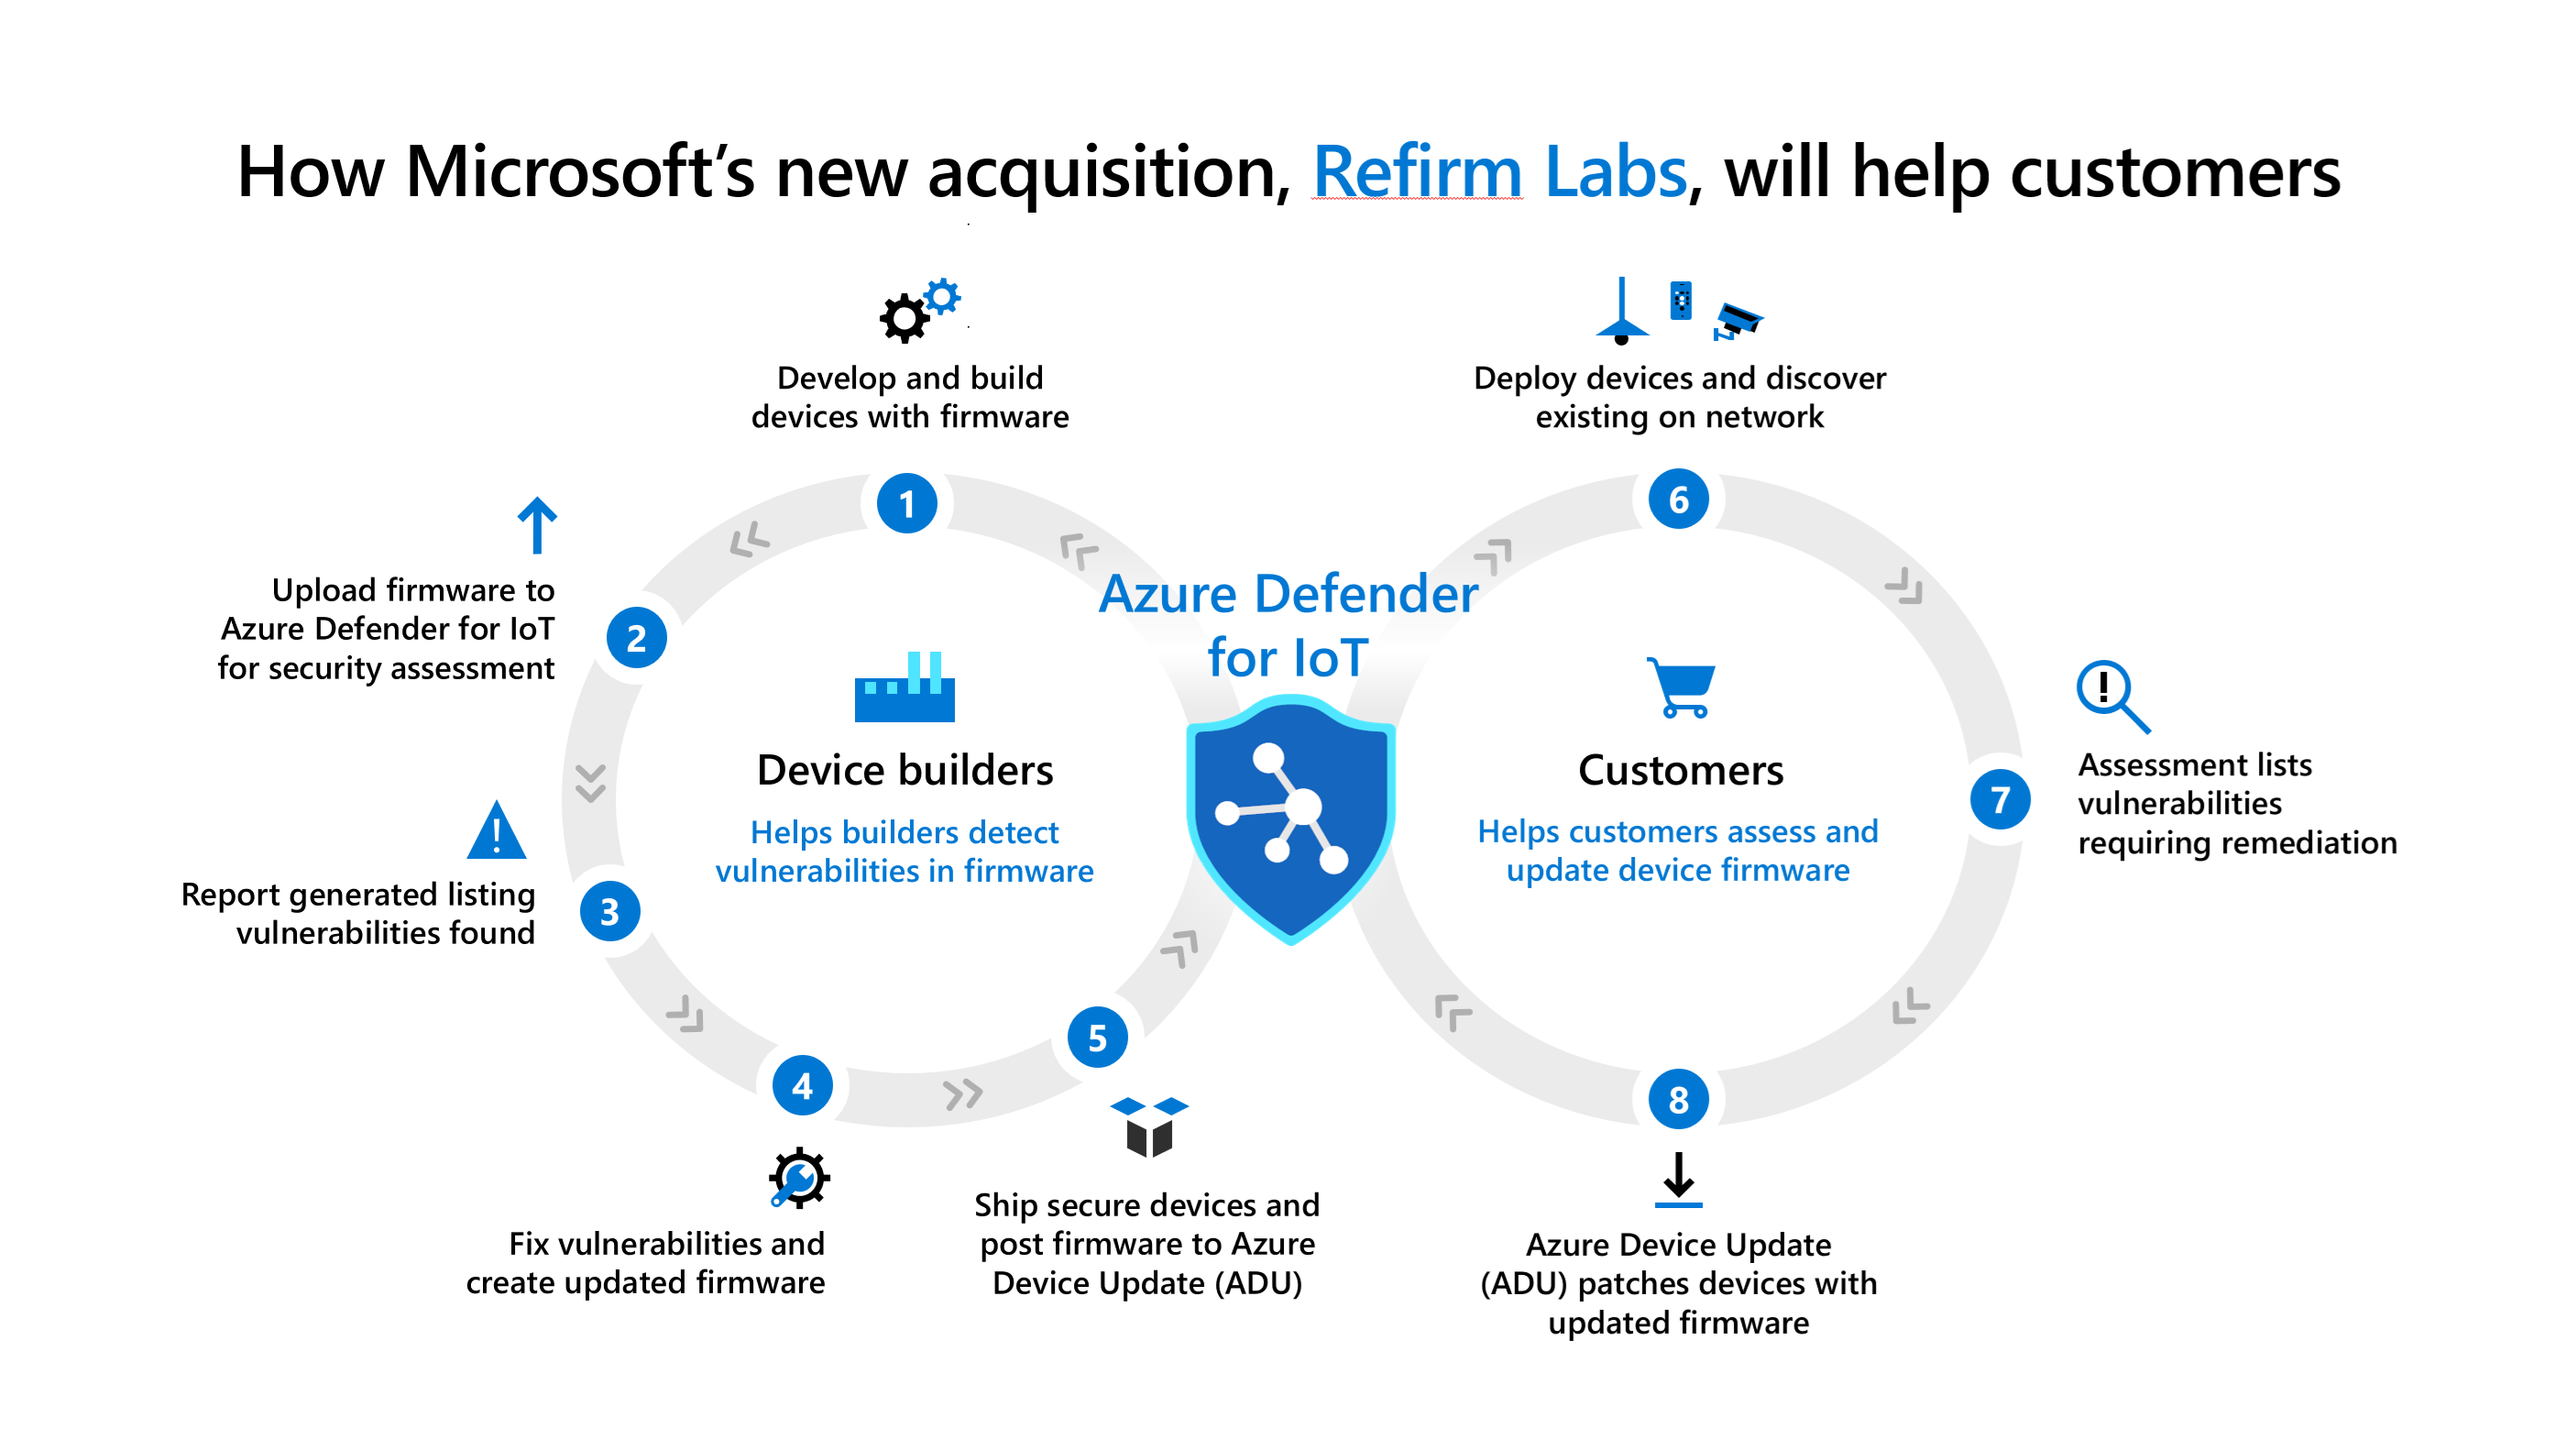 How Microsoft's new acquisition, ReFirm Labs, will help customers.